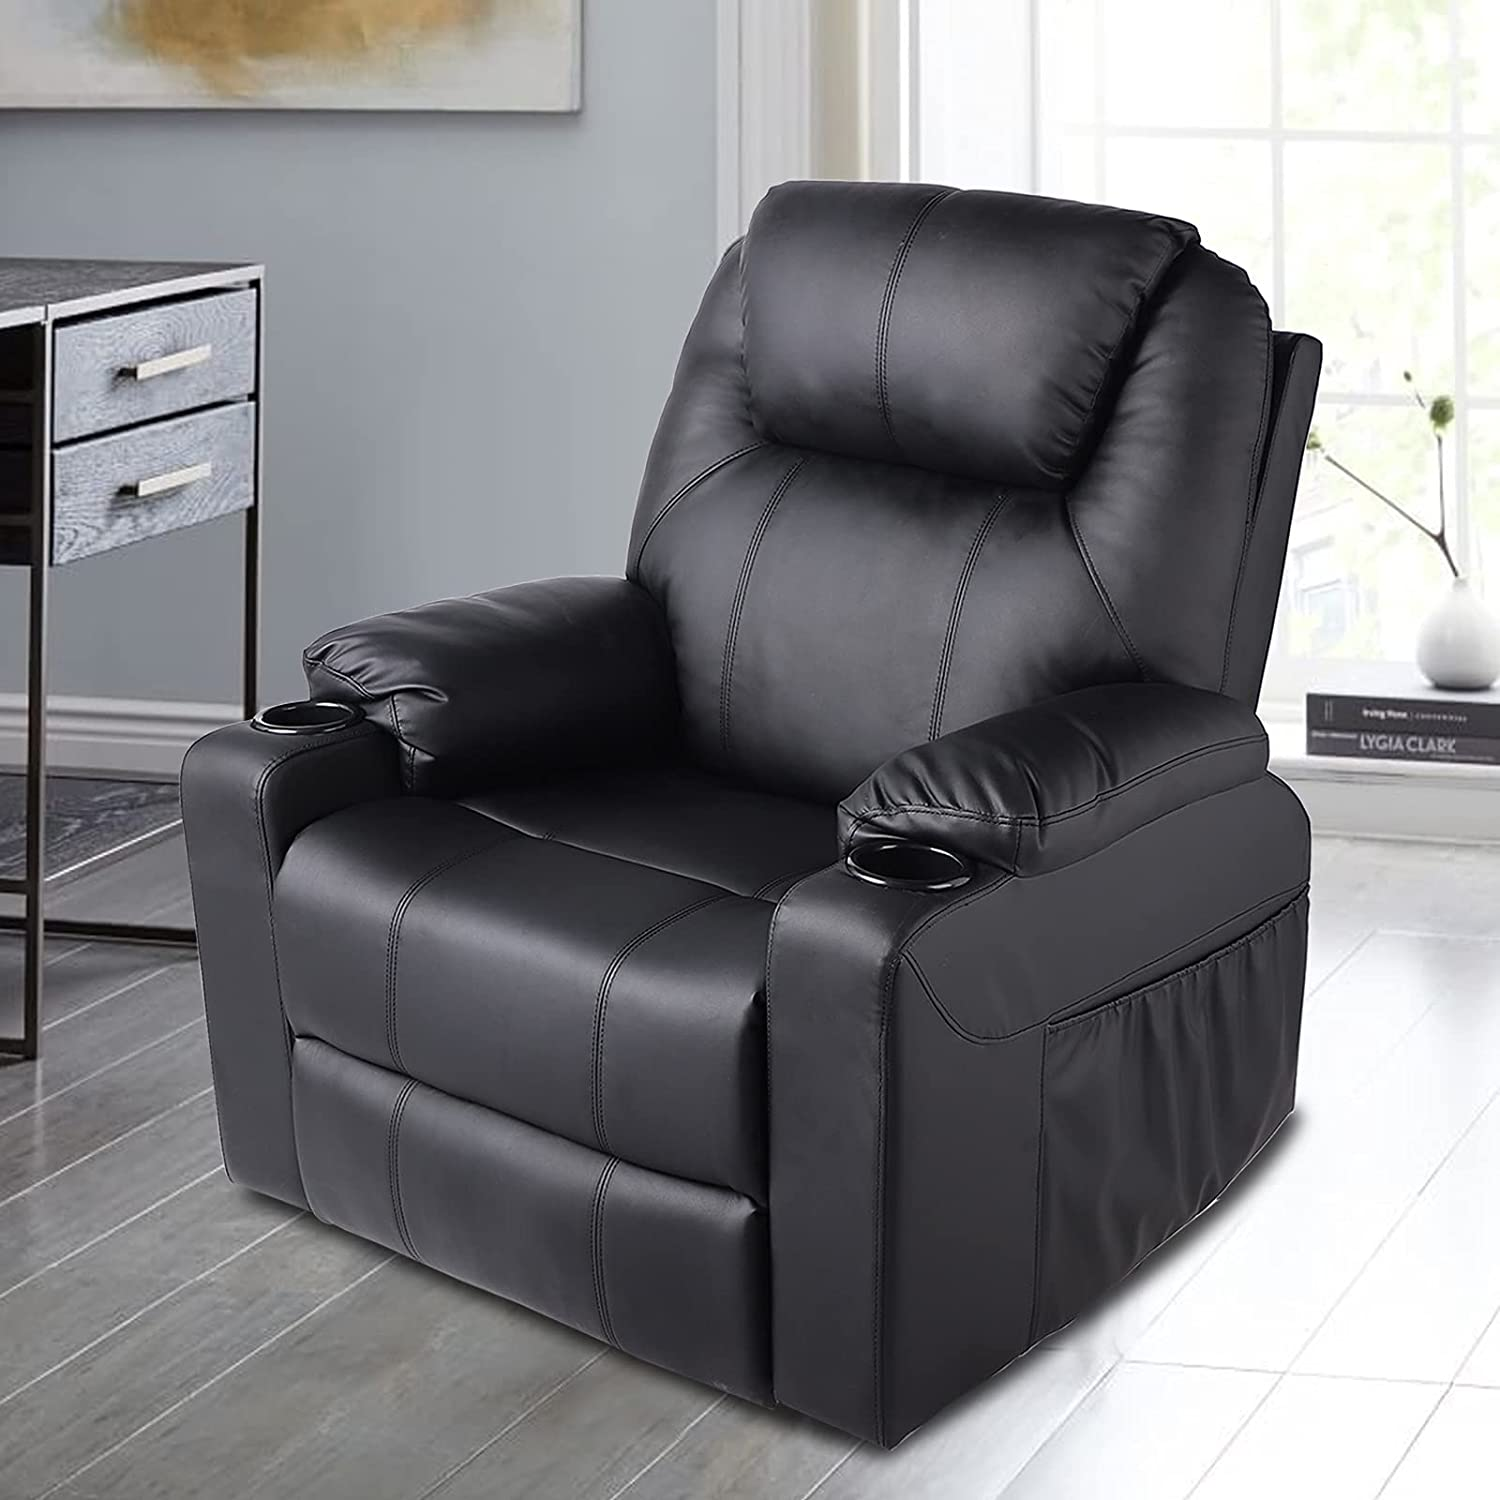 RELAXIXI unisex 360 Degree Ranking TOP5 Swivel Recliner Contr Remote Chair Wireless